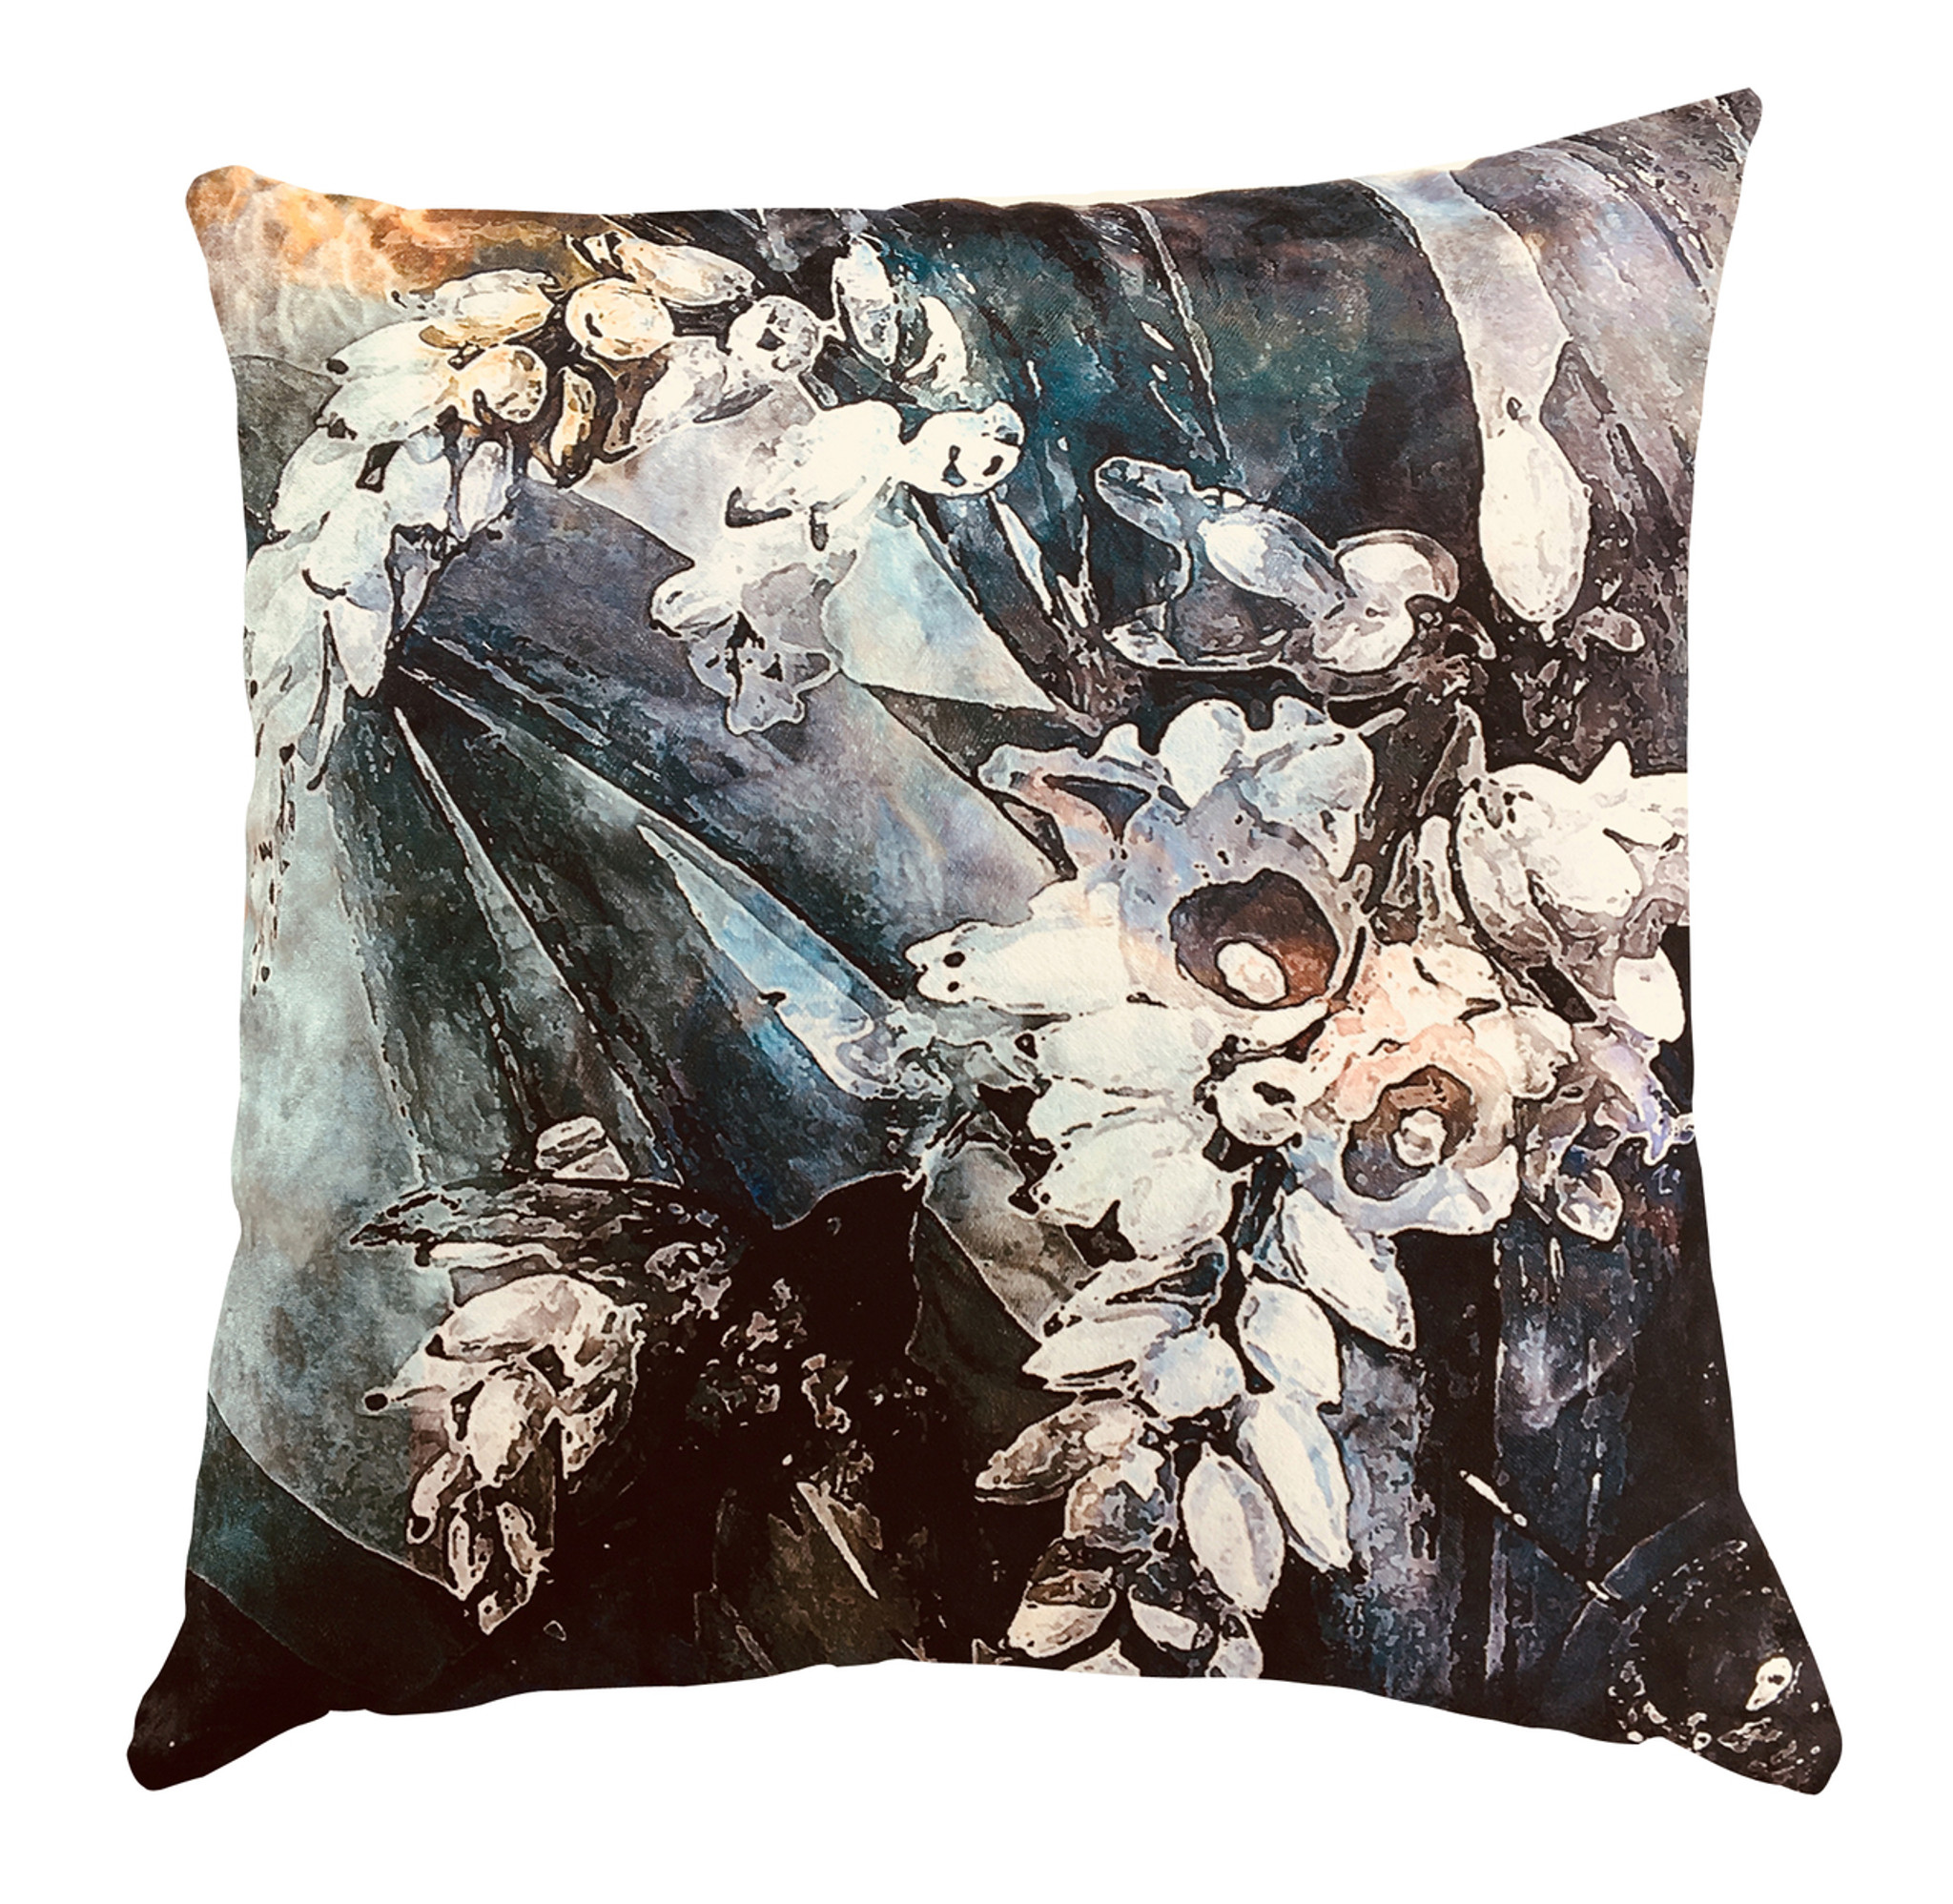 Cushion Cover - Flower Power Incandescent Ginger